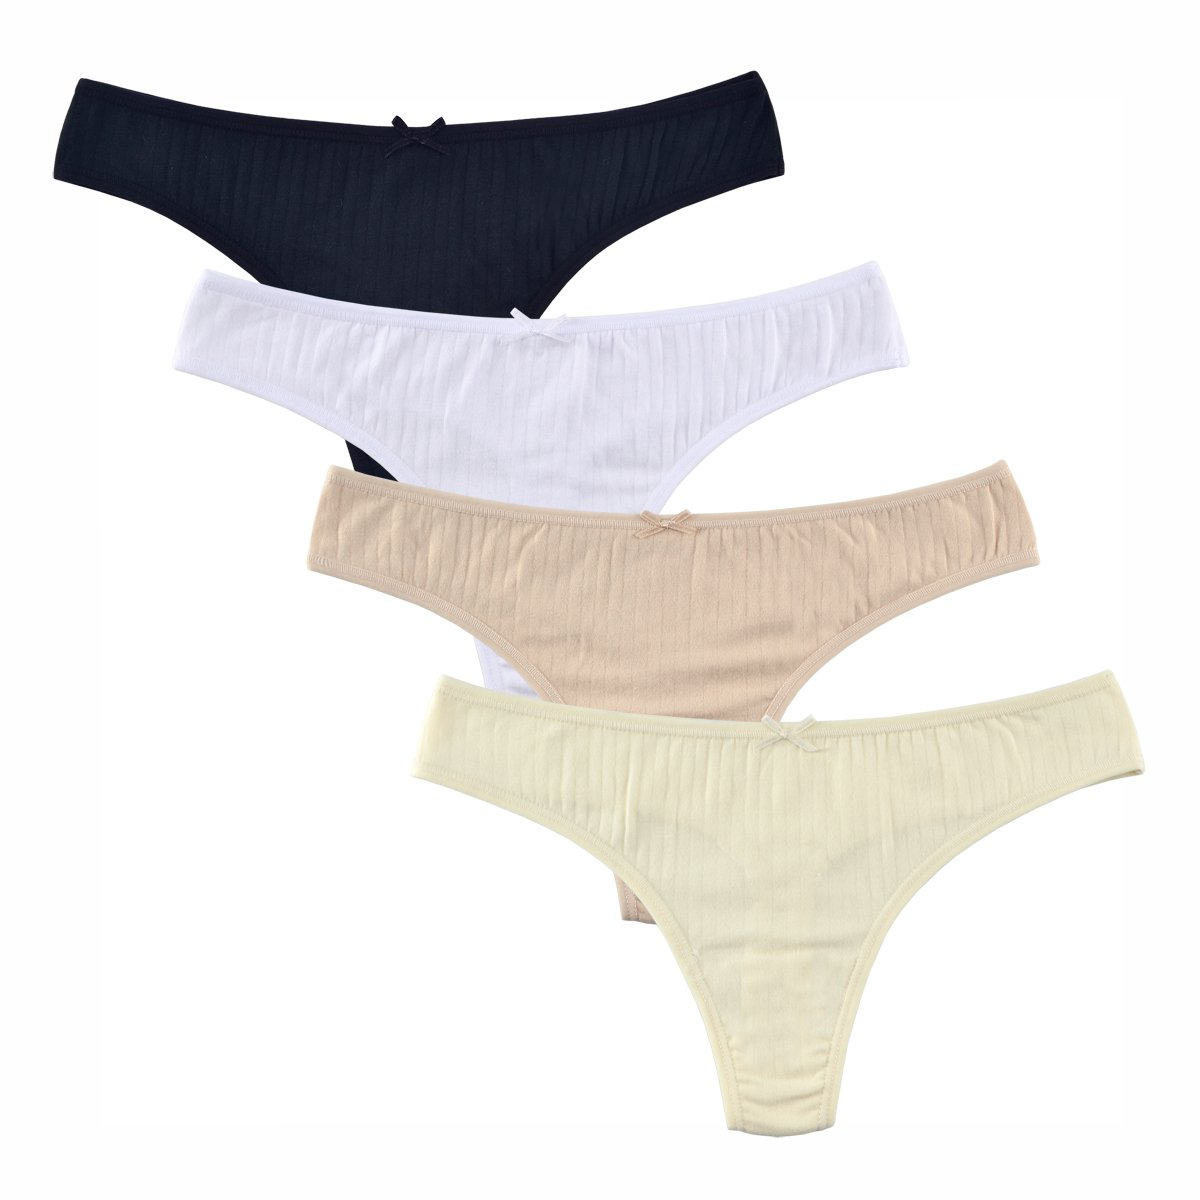 0cbd0c6c7c1 Knitlord Cotton Thong Panties Underwear 4 Pack for Women at Amazon Women's  Clothing store: